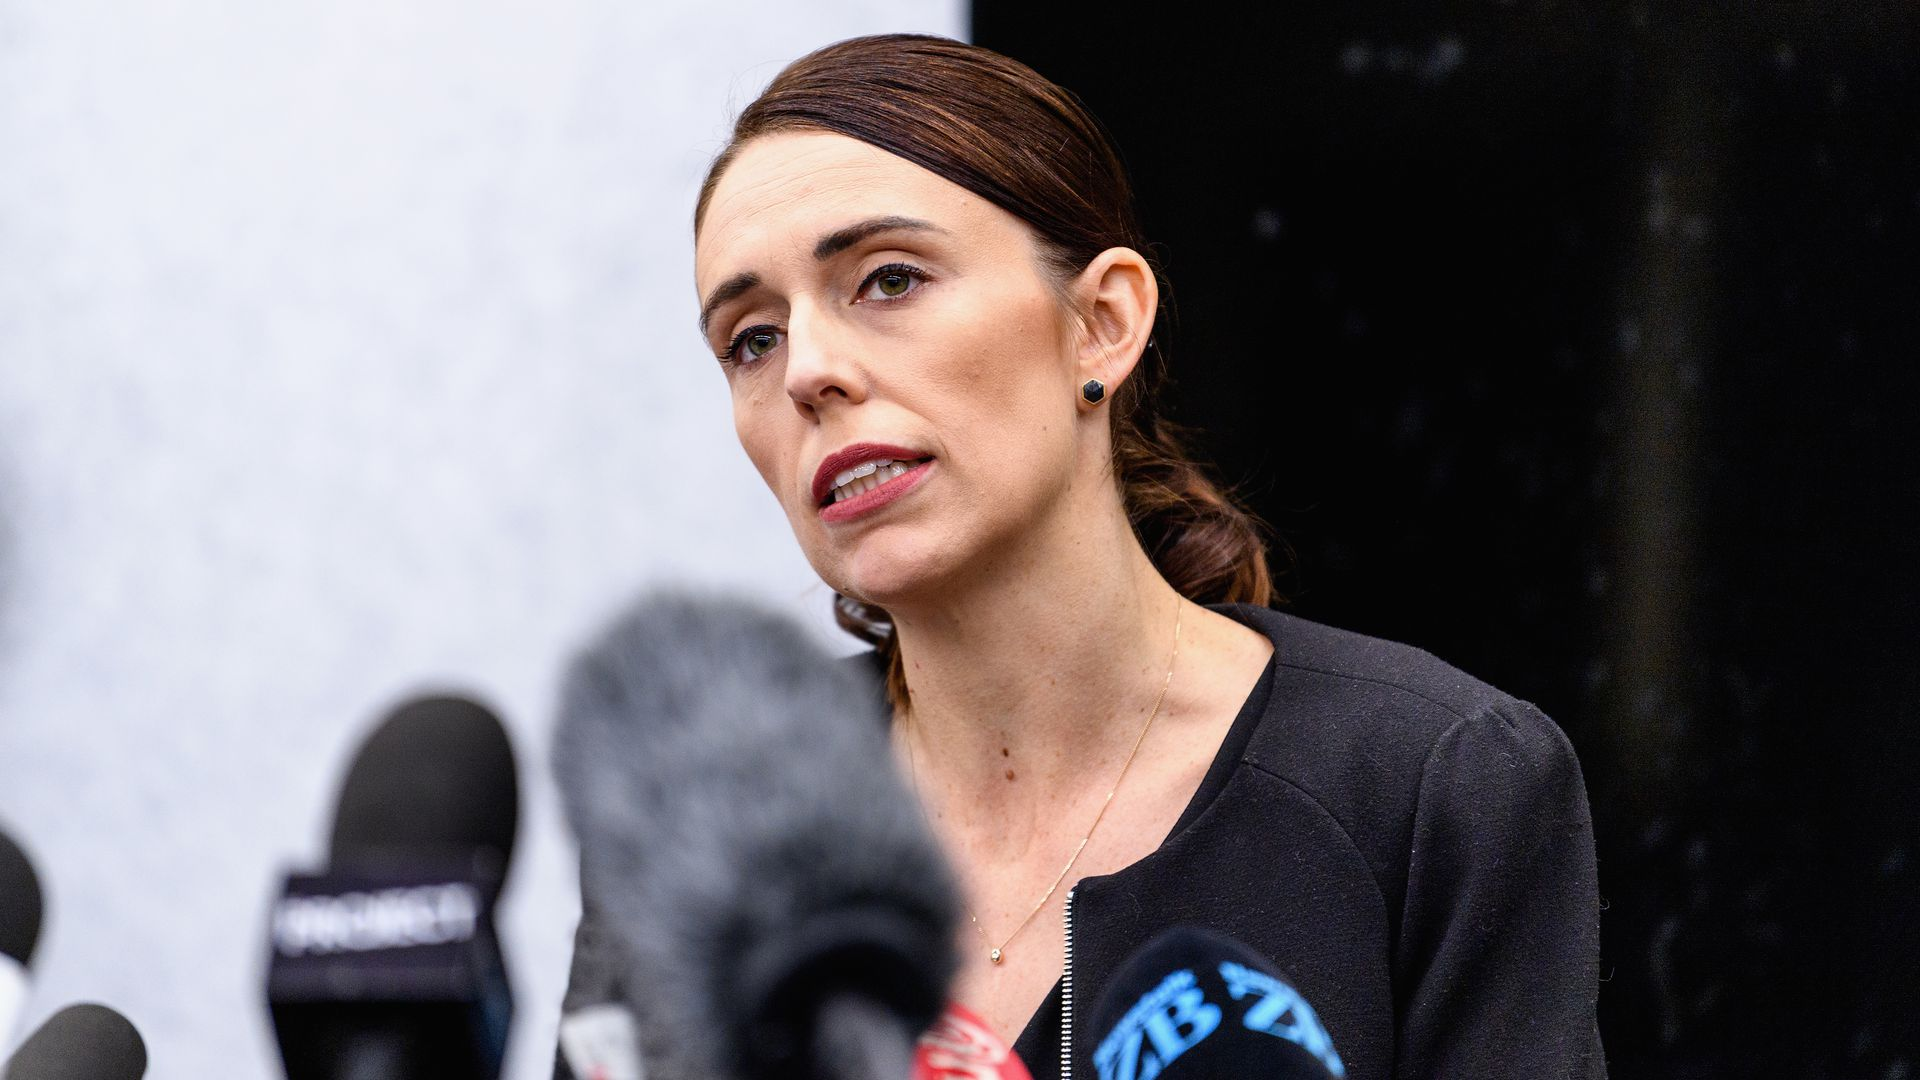 New Zealand Prime Minister Jacinda Ardern announces gun ban.